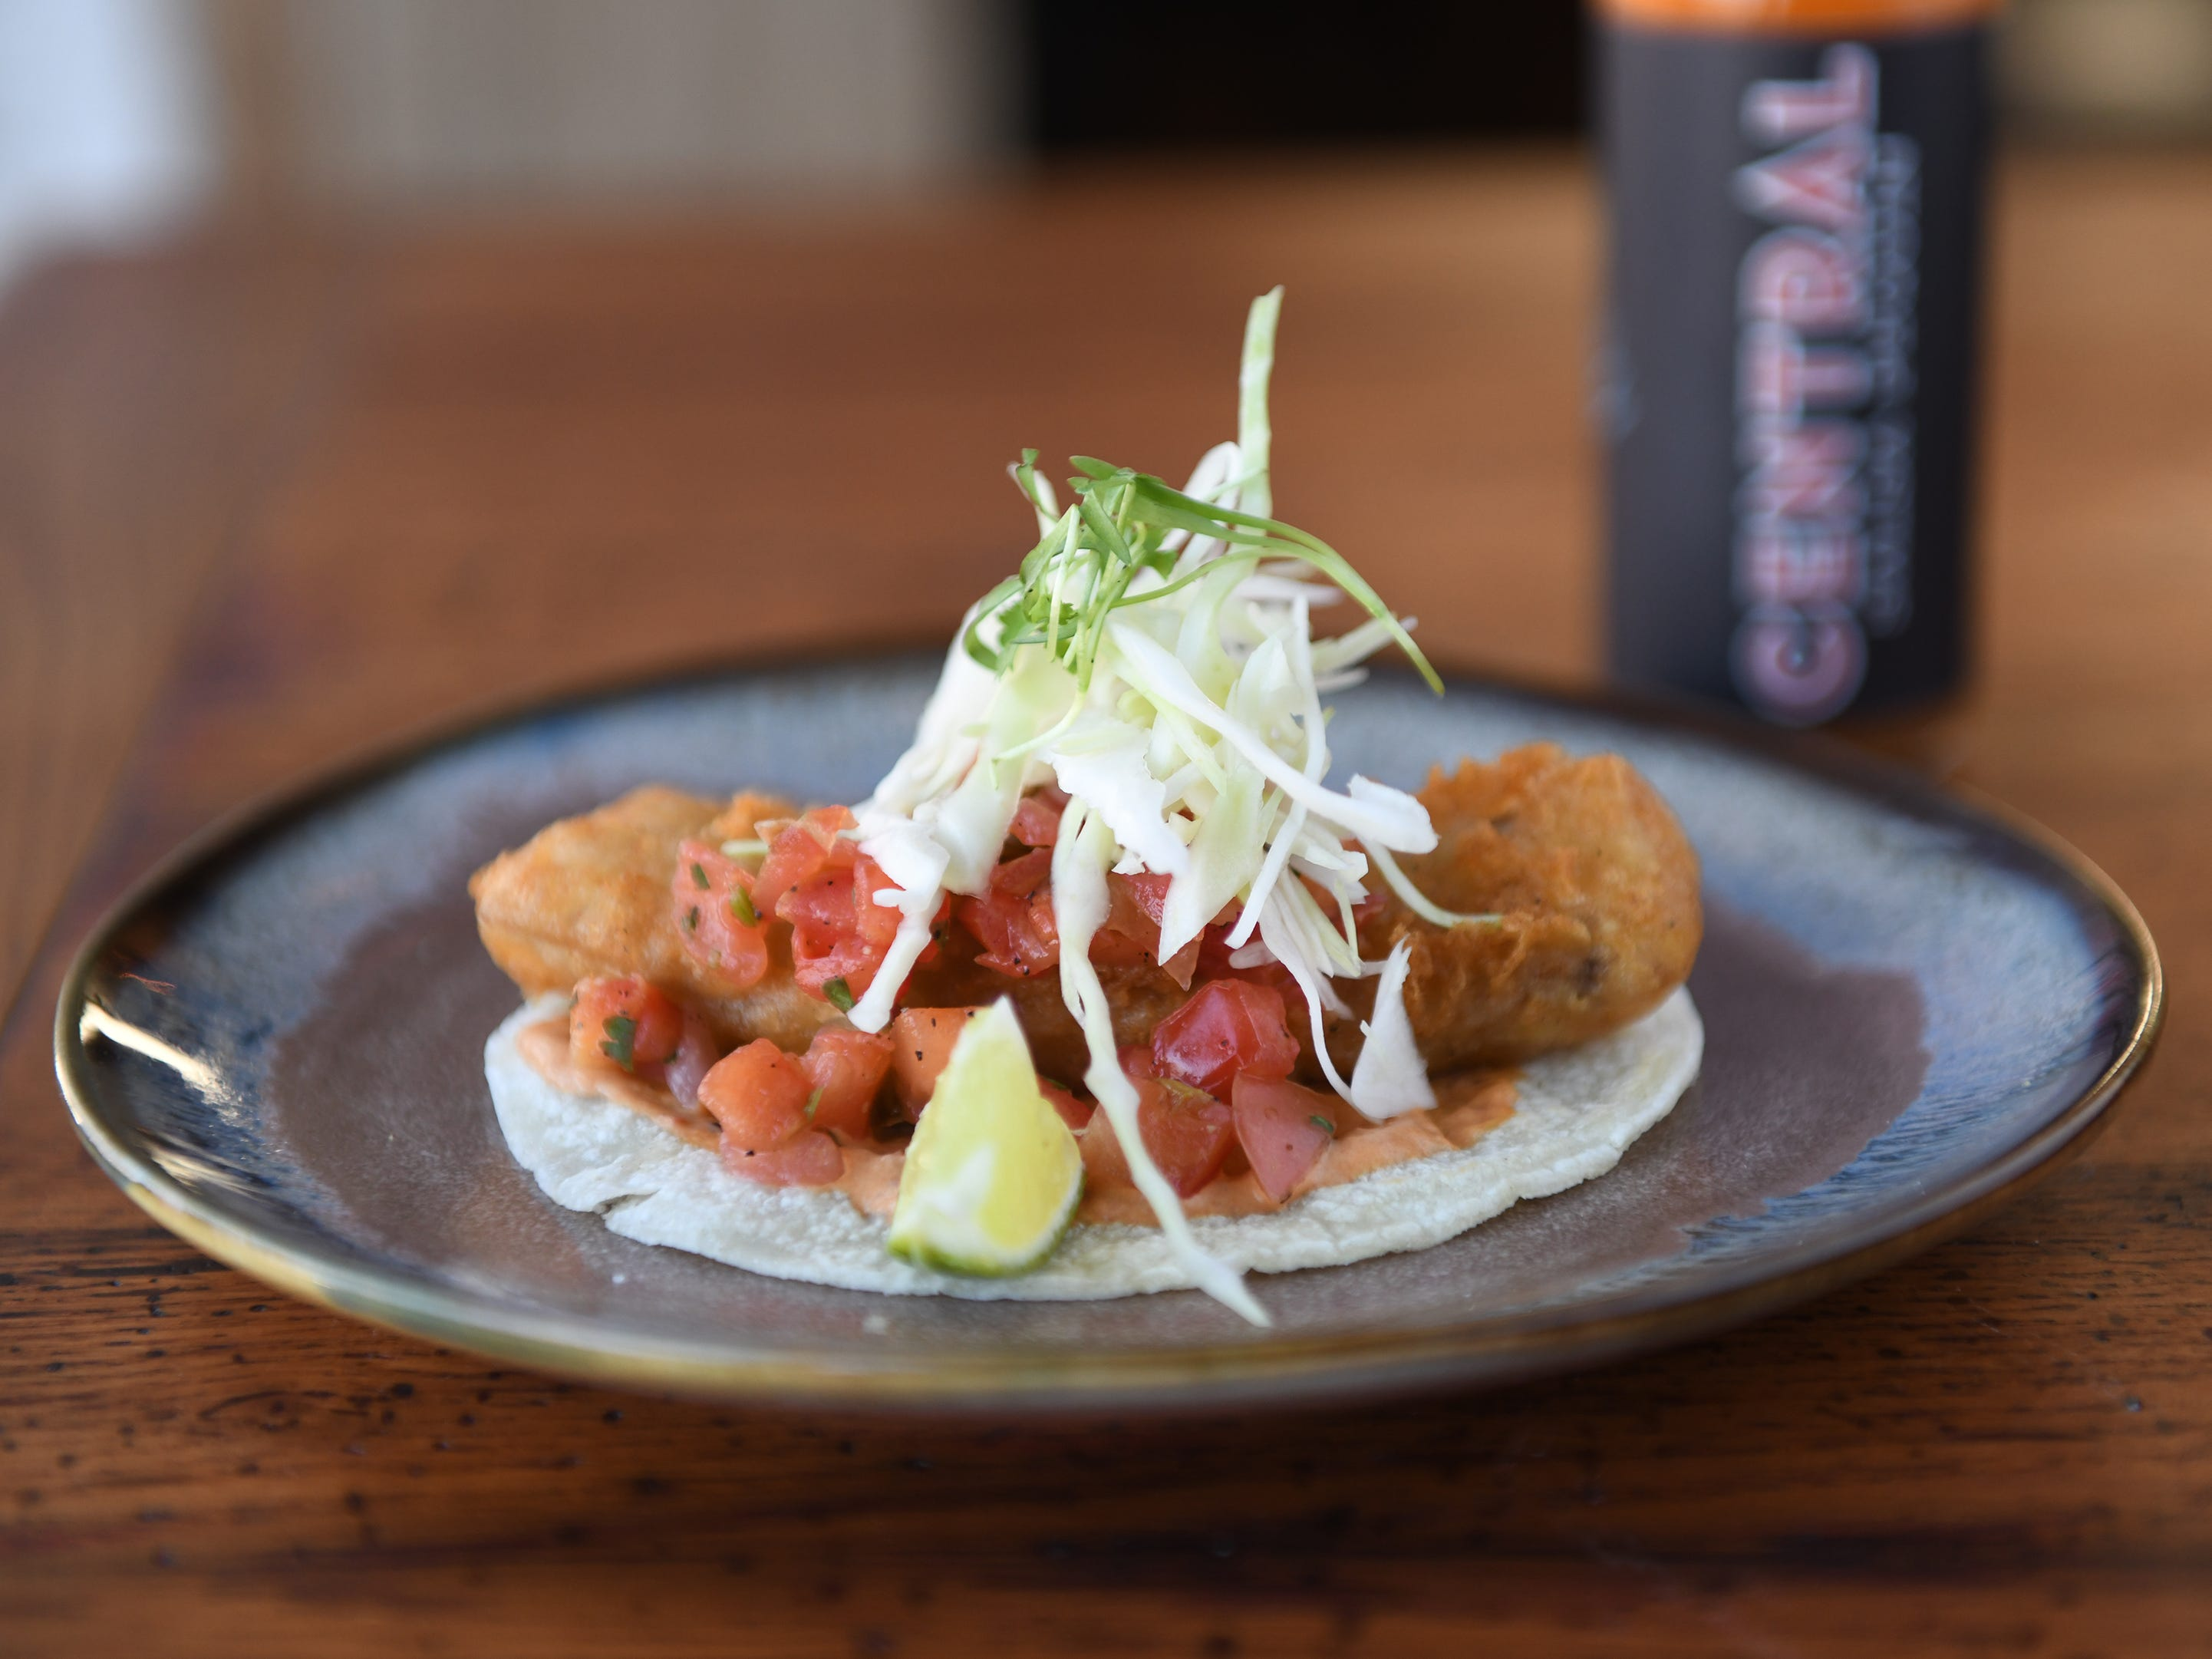 A Crispy Fish Taco is displayed at Central Taco And Tequila in Westmont.